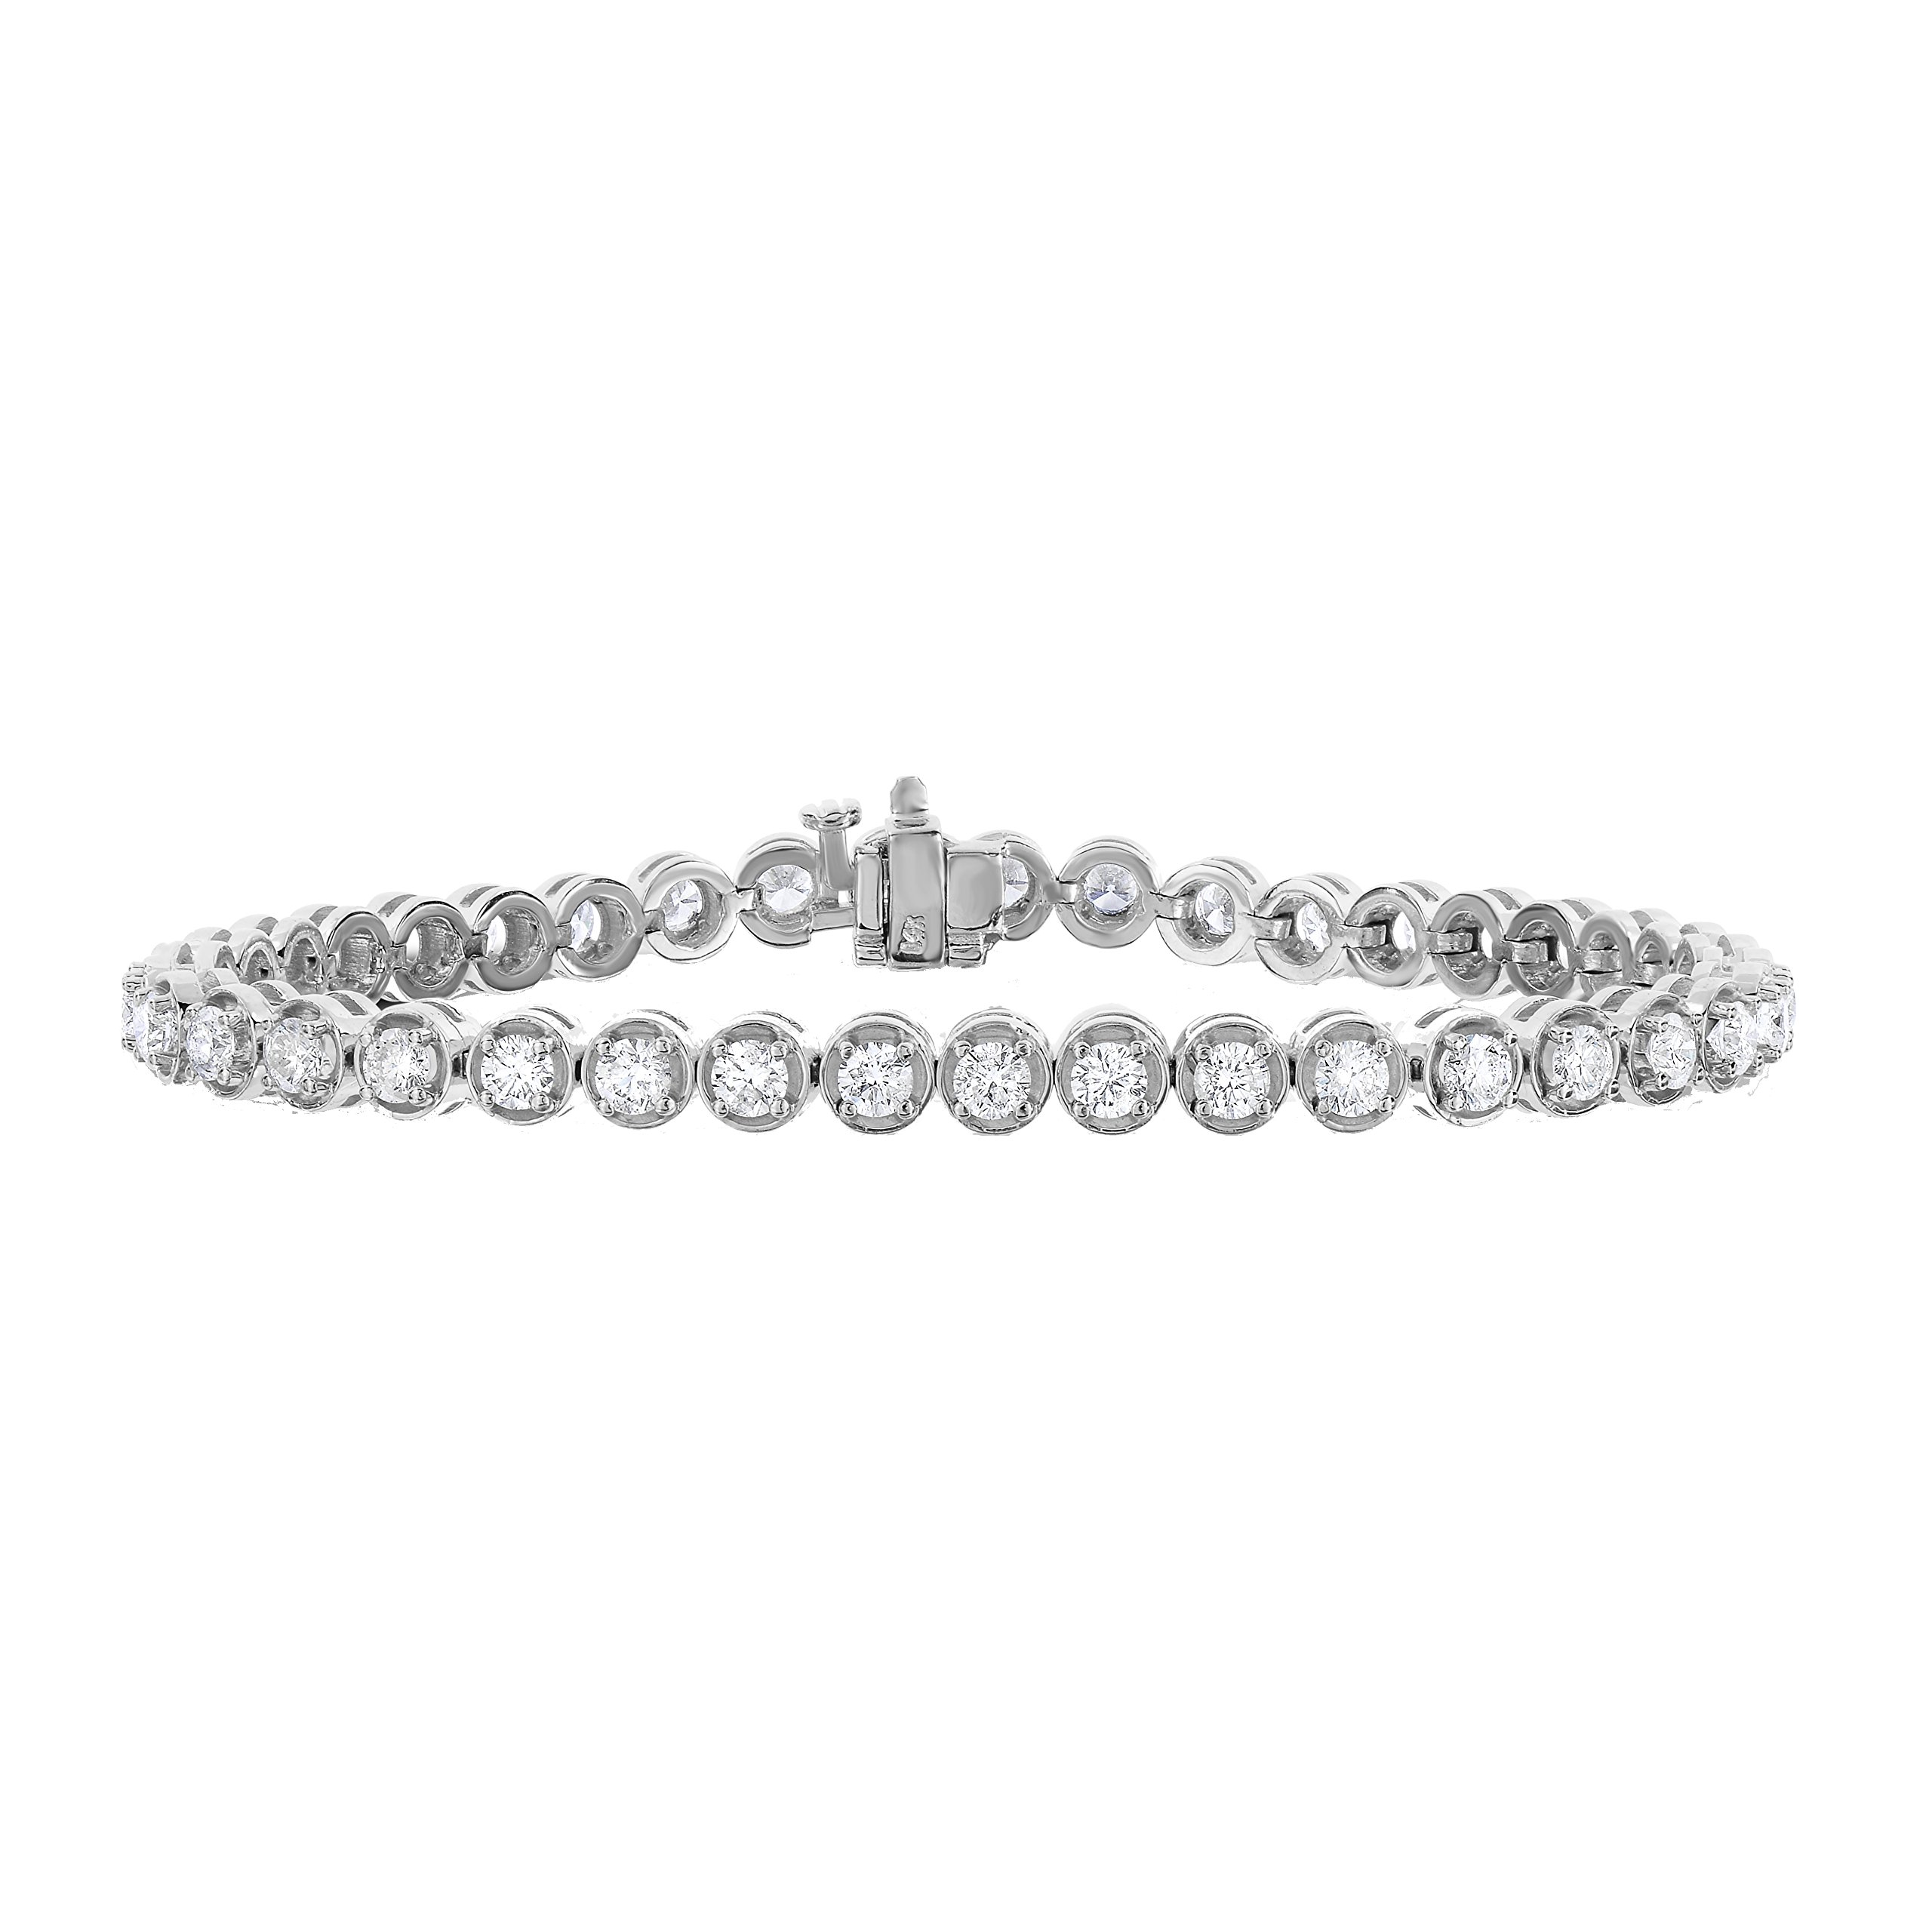 3 cttw Certified Classic Tennis Diamond Bracelet 14K White Gold SI2-I1 Clarity G-H Color by Vir Jewels